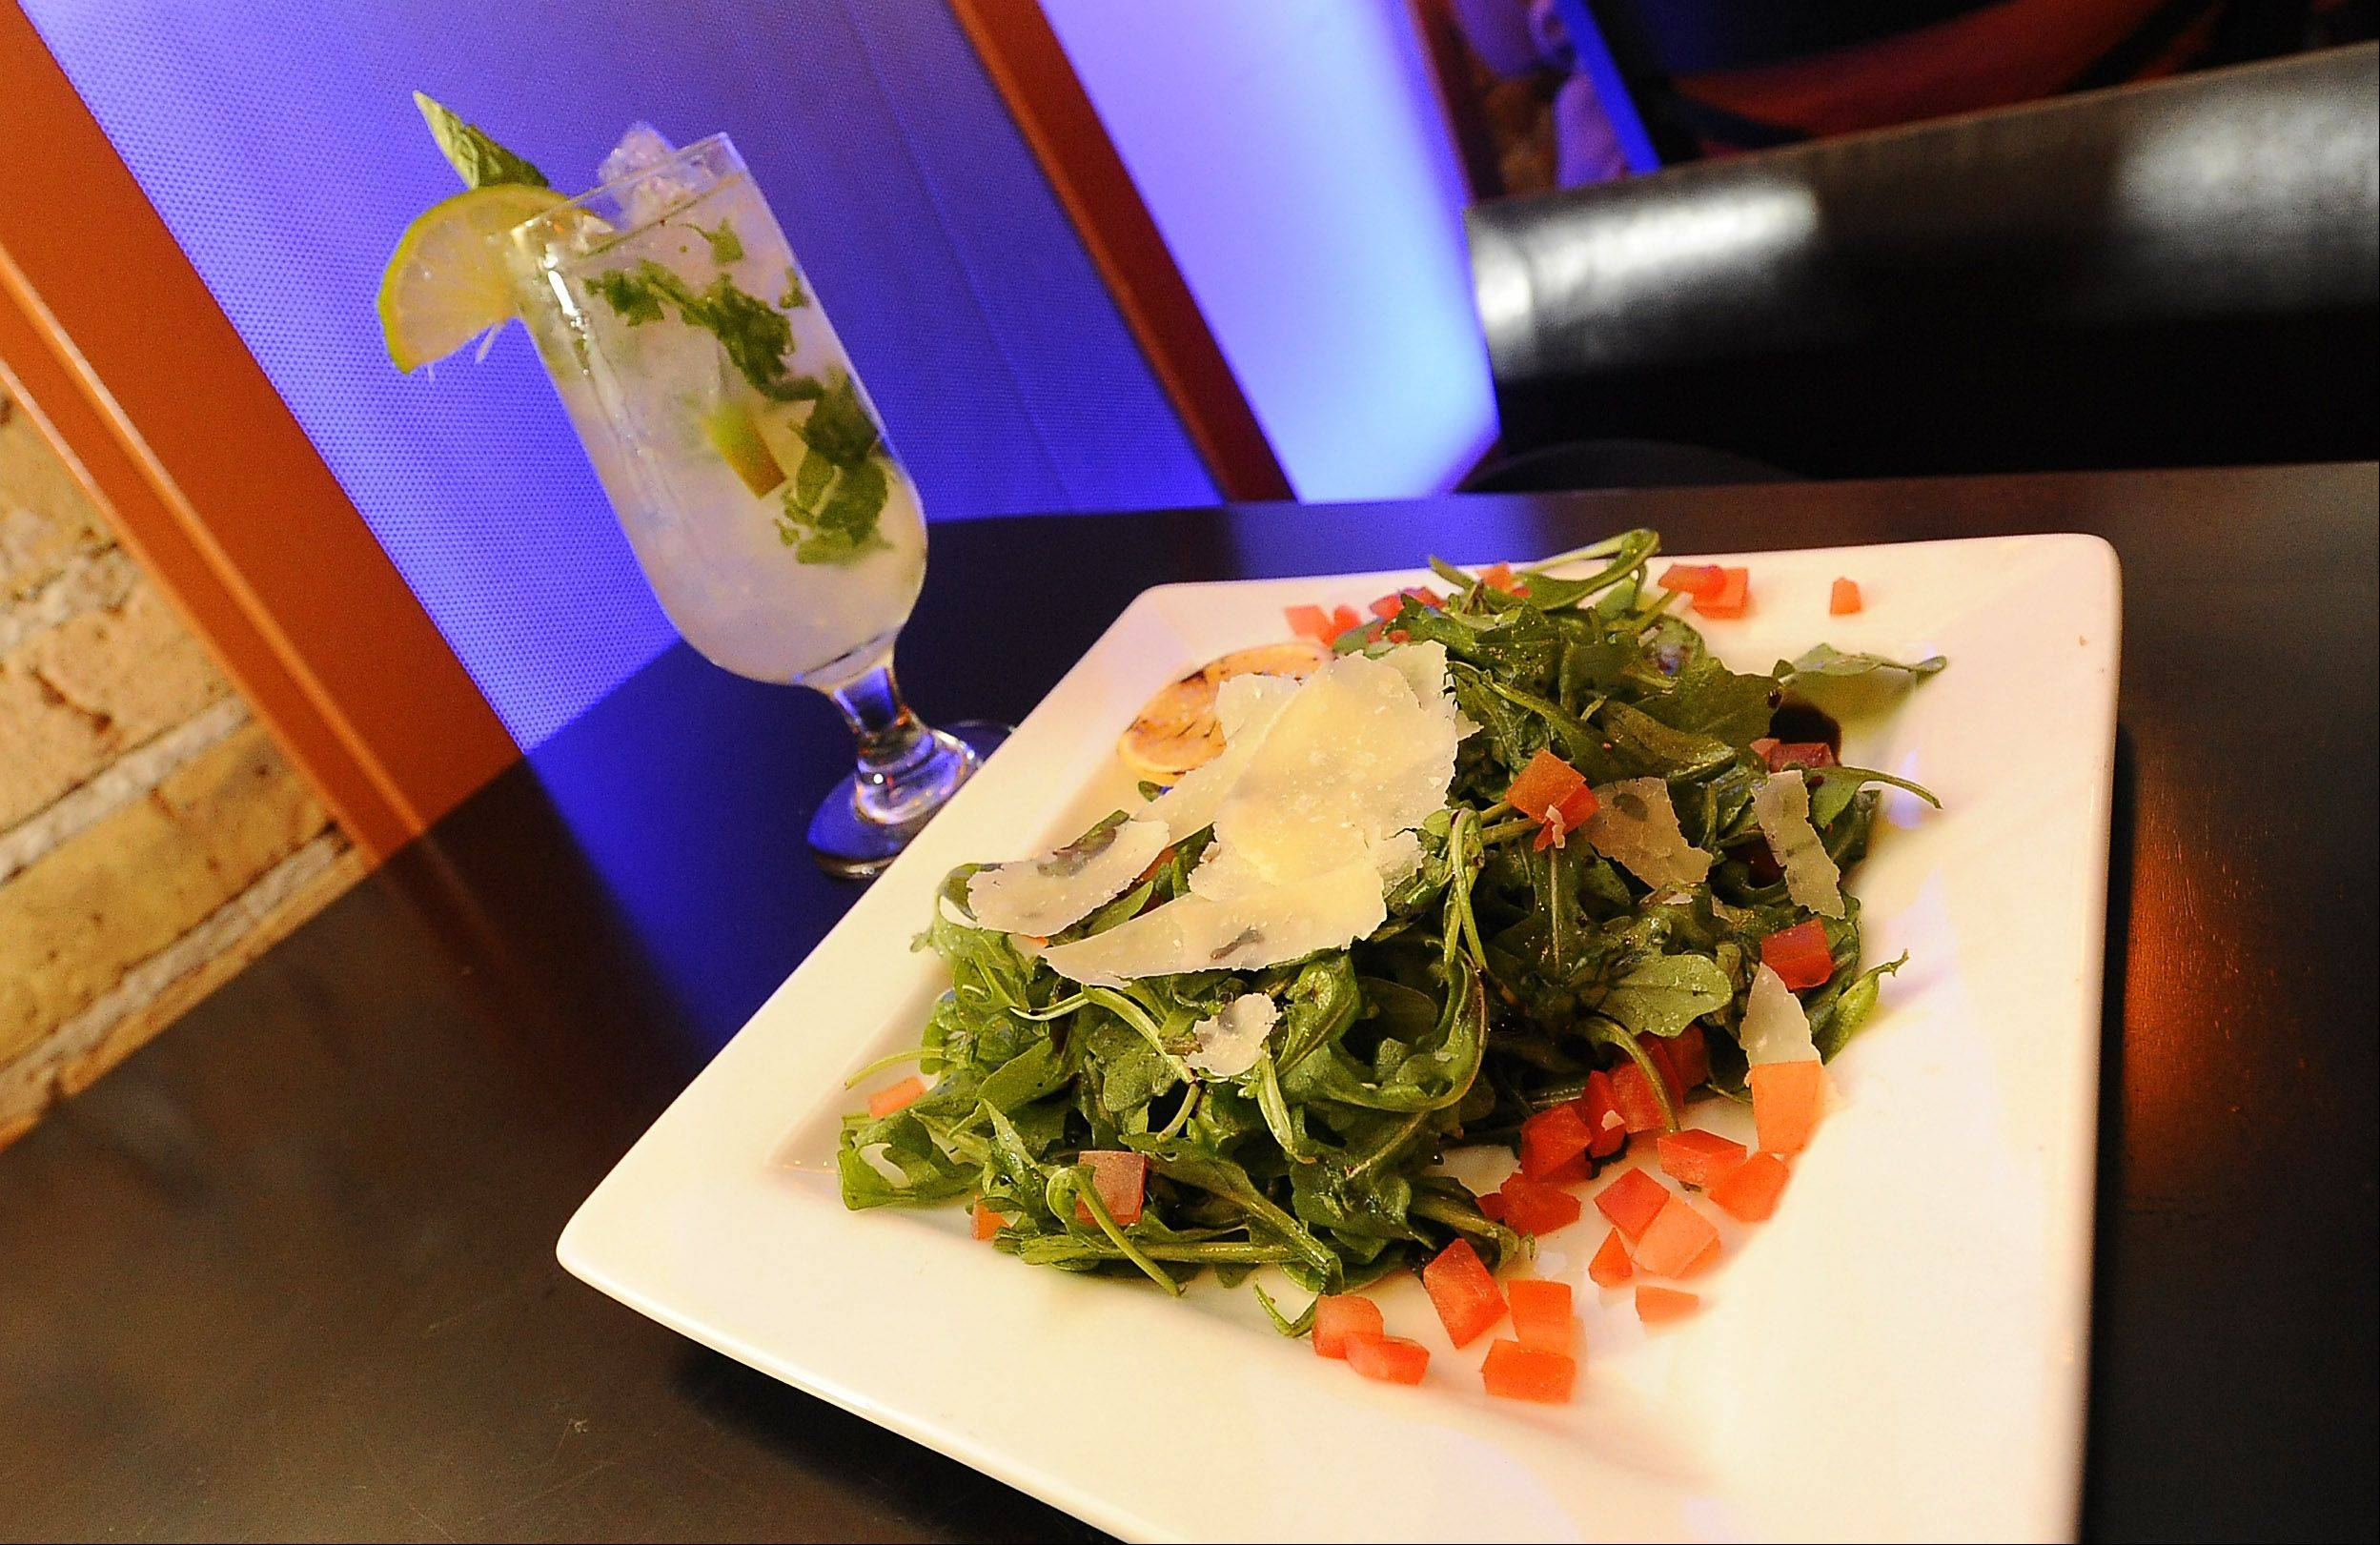 The Annex's arugula salad comes topped with shavings of parmesan cheese.